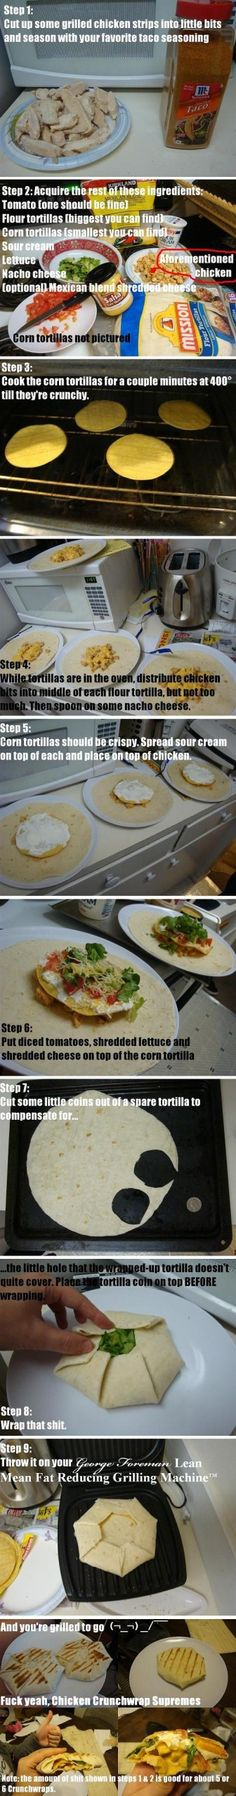 Homemade Crunch Wrap Supremes